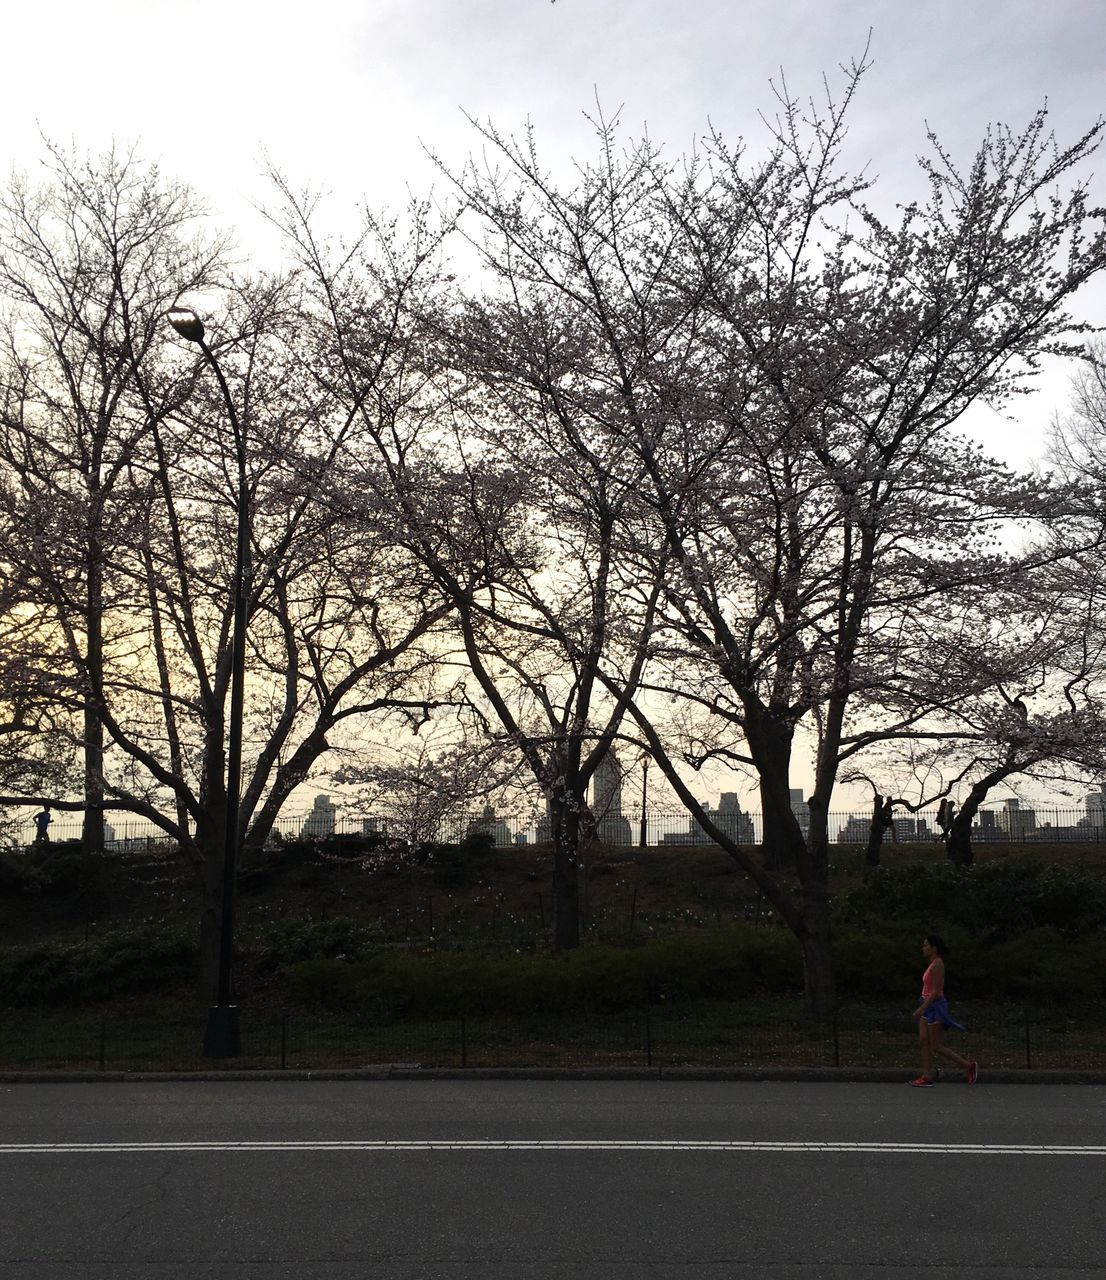 tree, one person, bare tree, real people, road, outdoors, full length, day, leisure activity, sky, lifestyles, transportation, women, nature, branch, adult, people